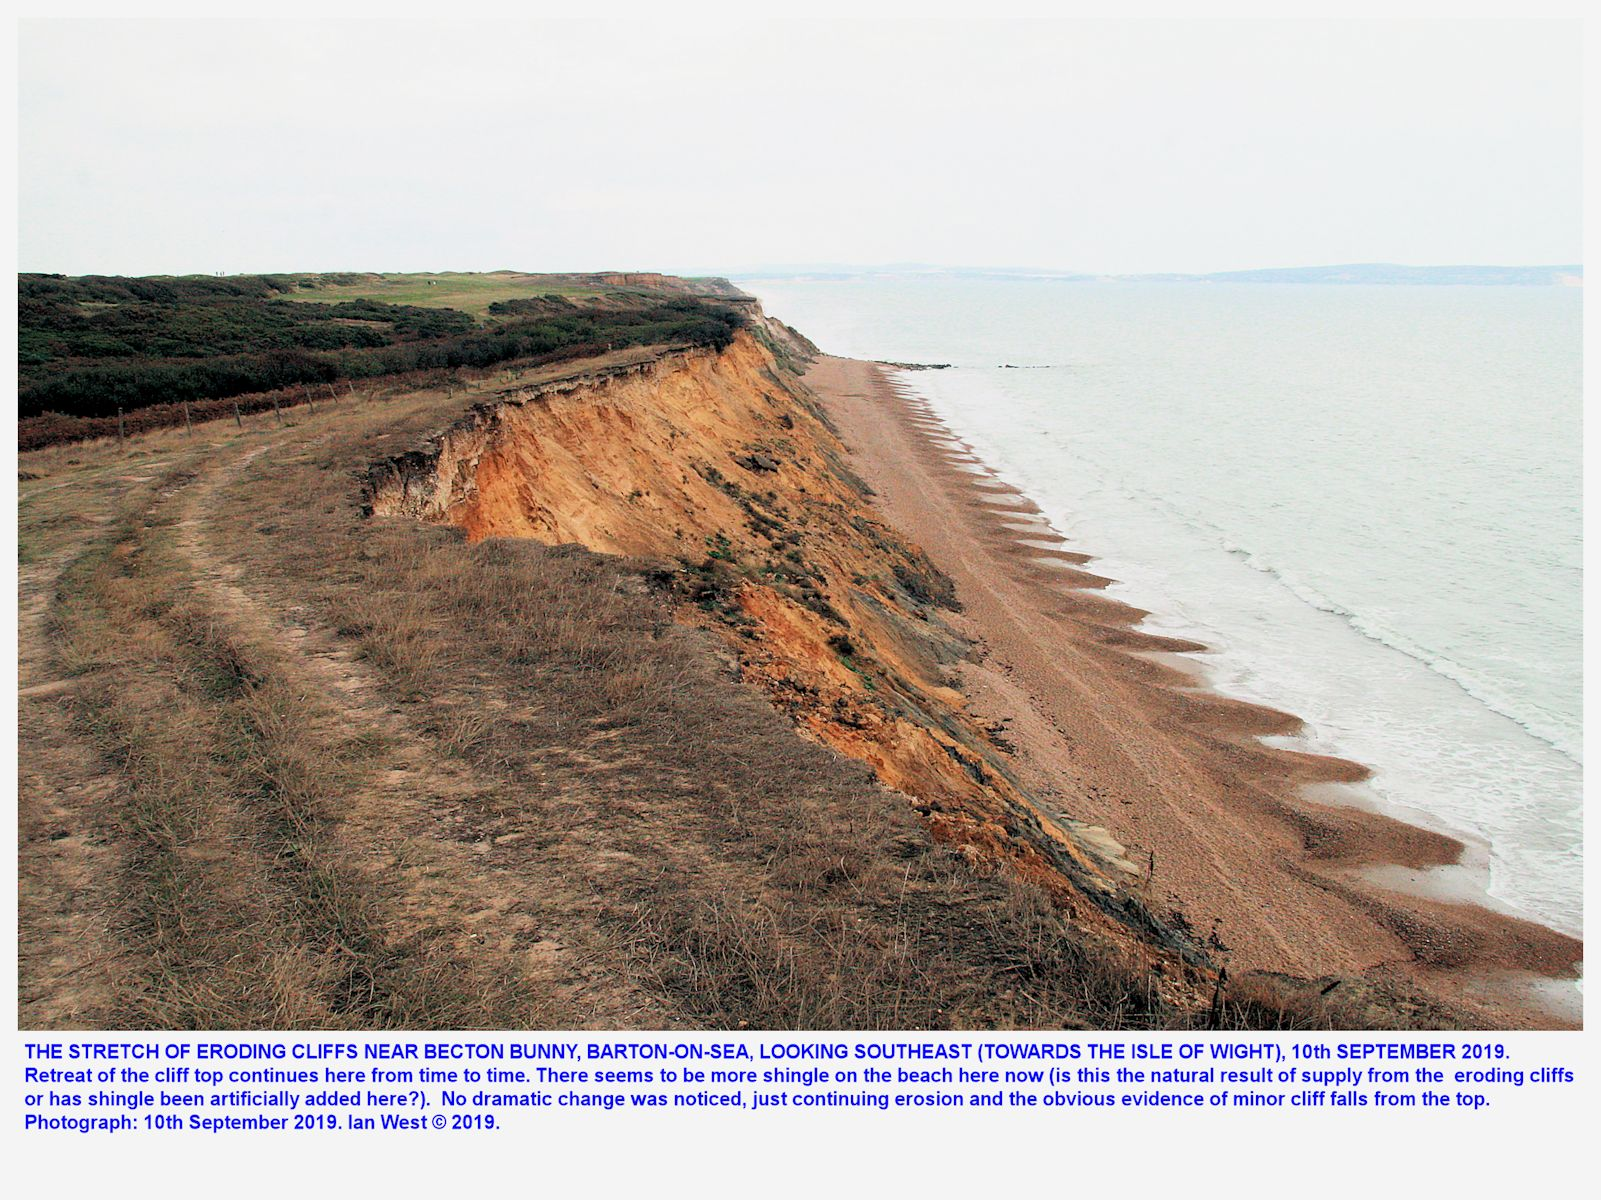 Approaching Becton Bunny, looking southeast, and seeing the continuing erosion of the cliffs in this area, just southeast of the end of the Barton sea defences, Hampshire, England, 10th September, 2019